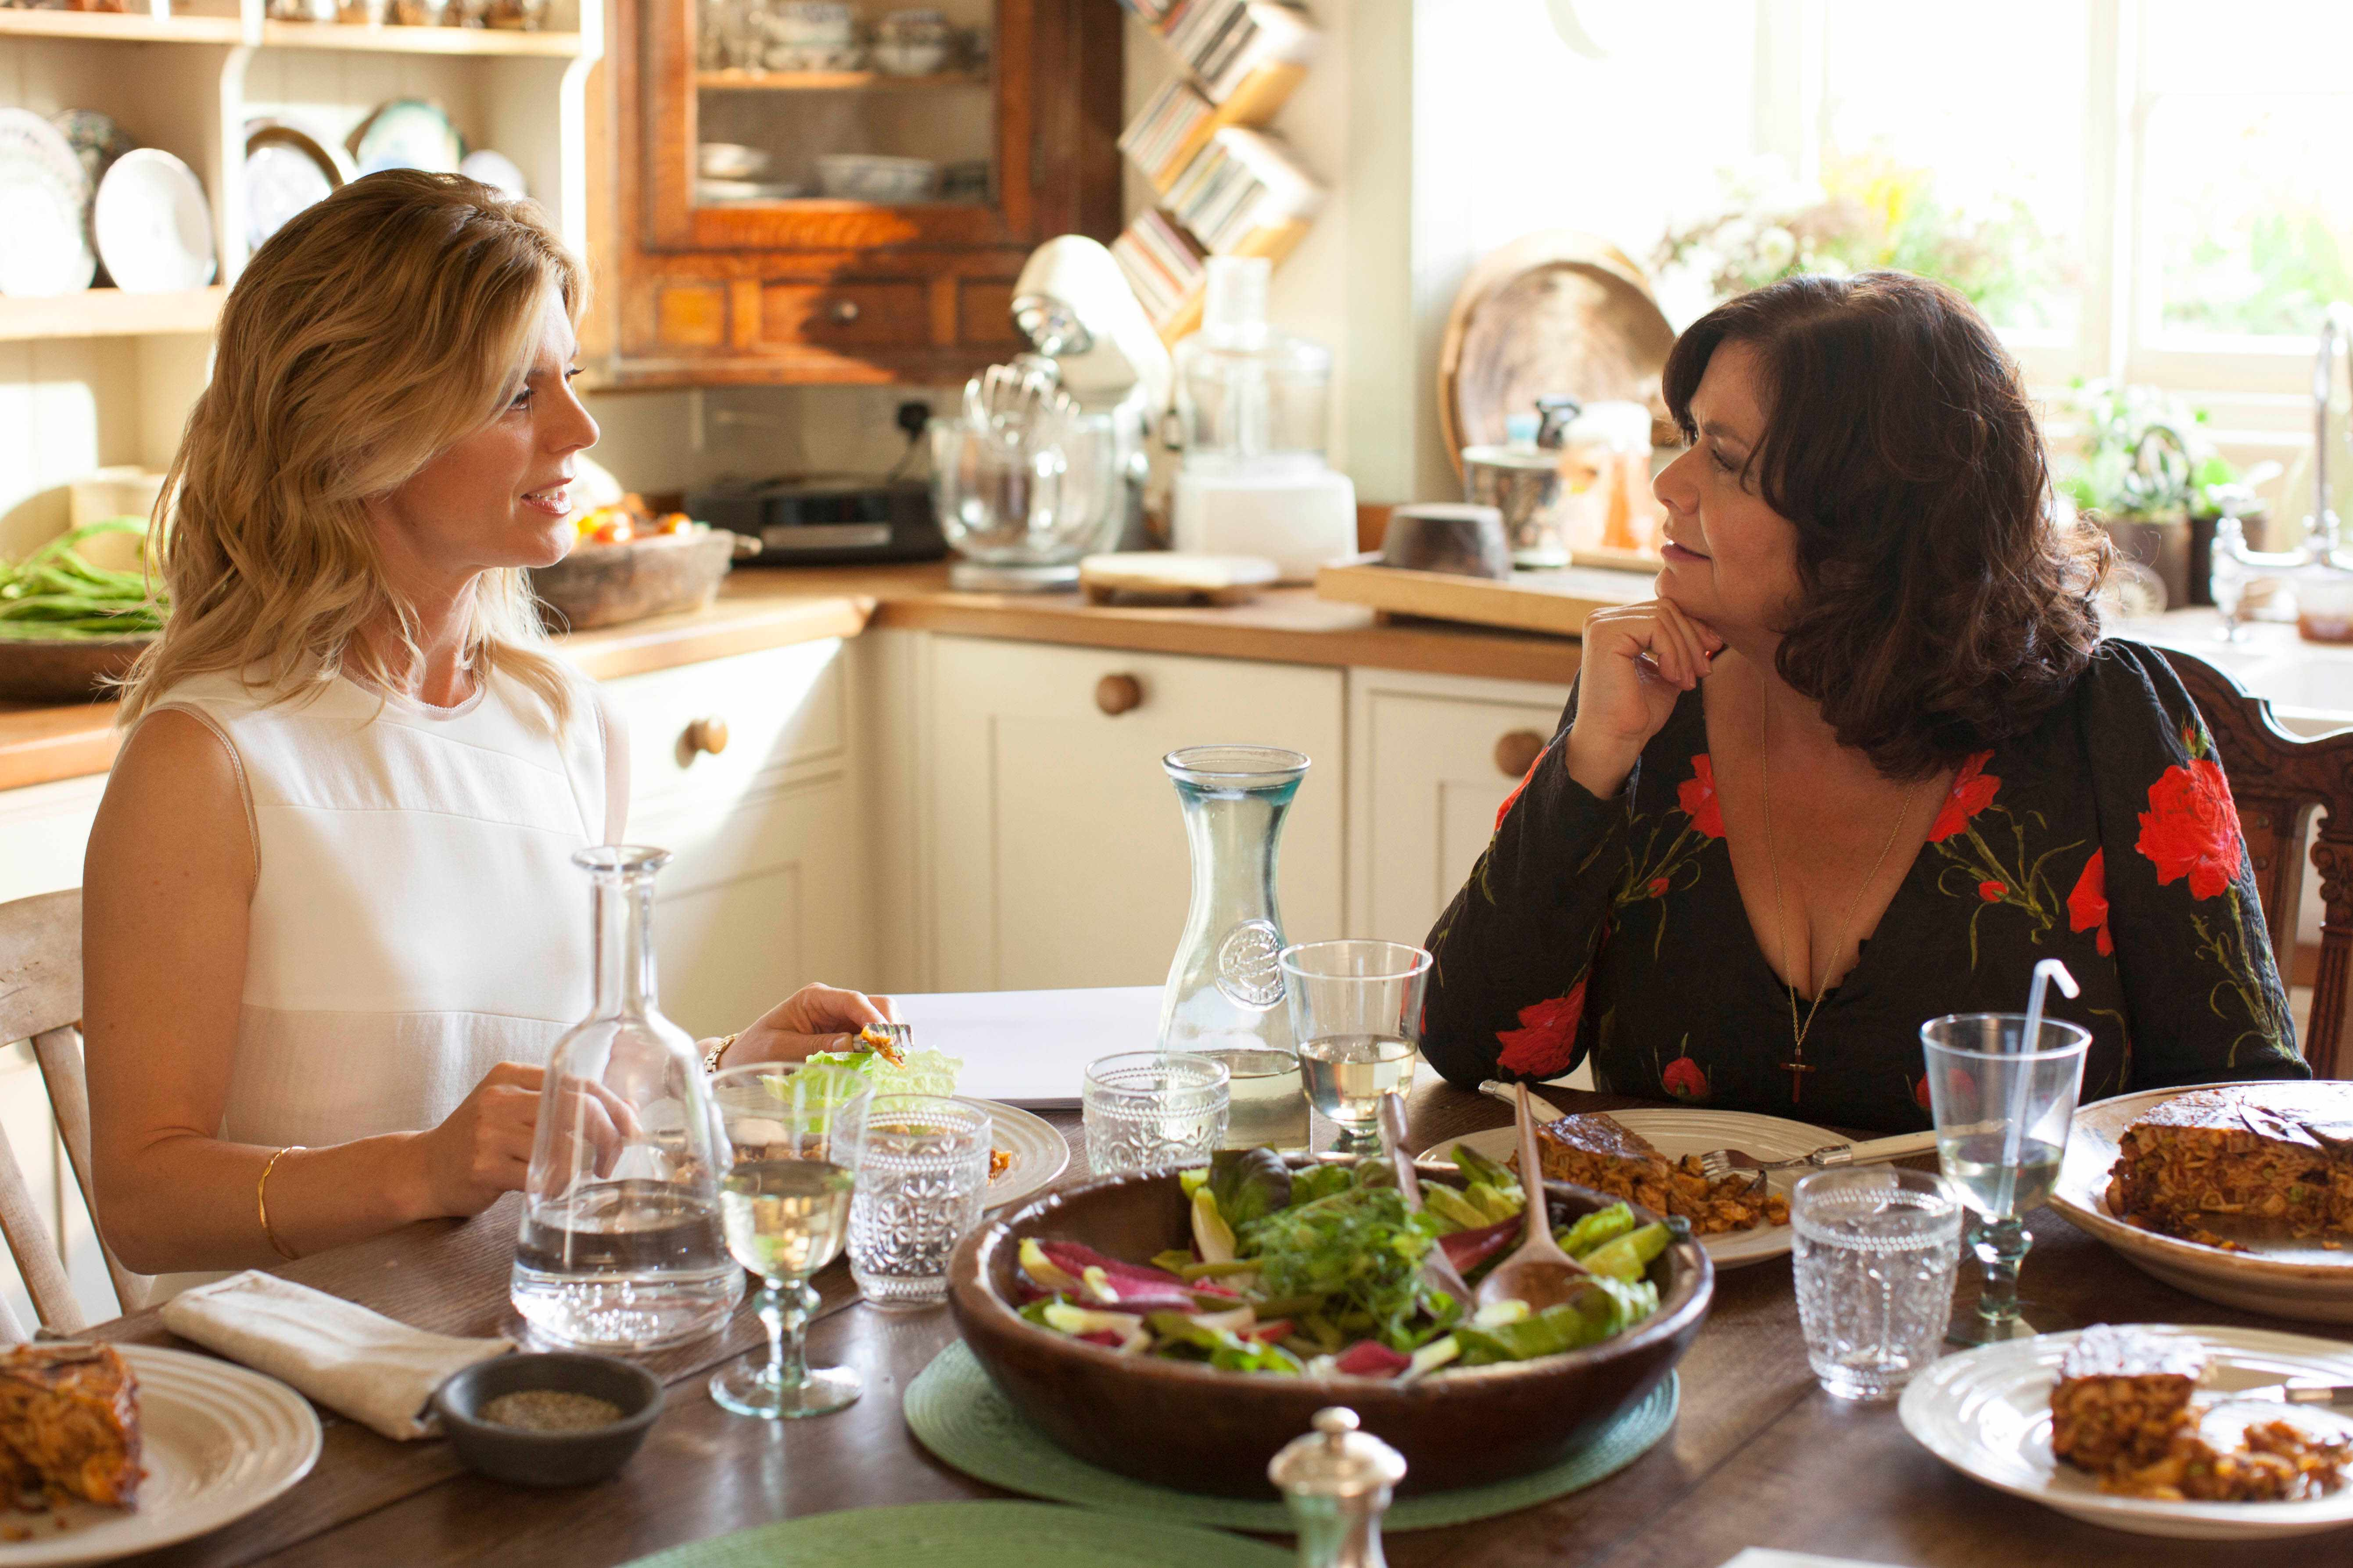 Delicious - Series 02  Episode 01  Emilia Fox as Sam and Dawn French as Gina. (Sky, BA)